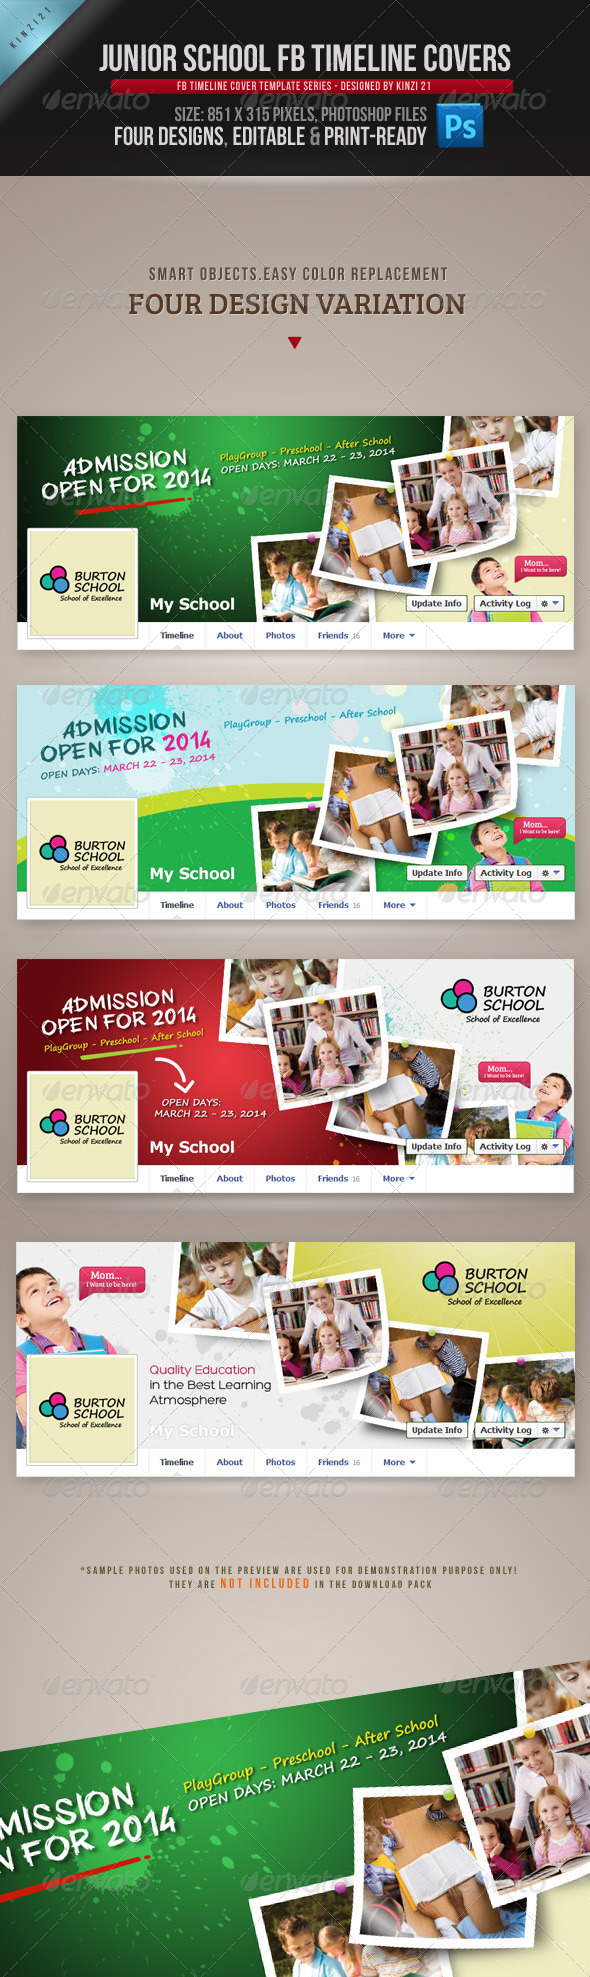 GraphicRiver Junior School FB Timeline Covers 4863151